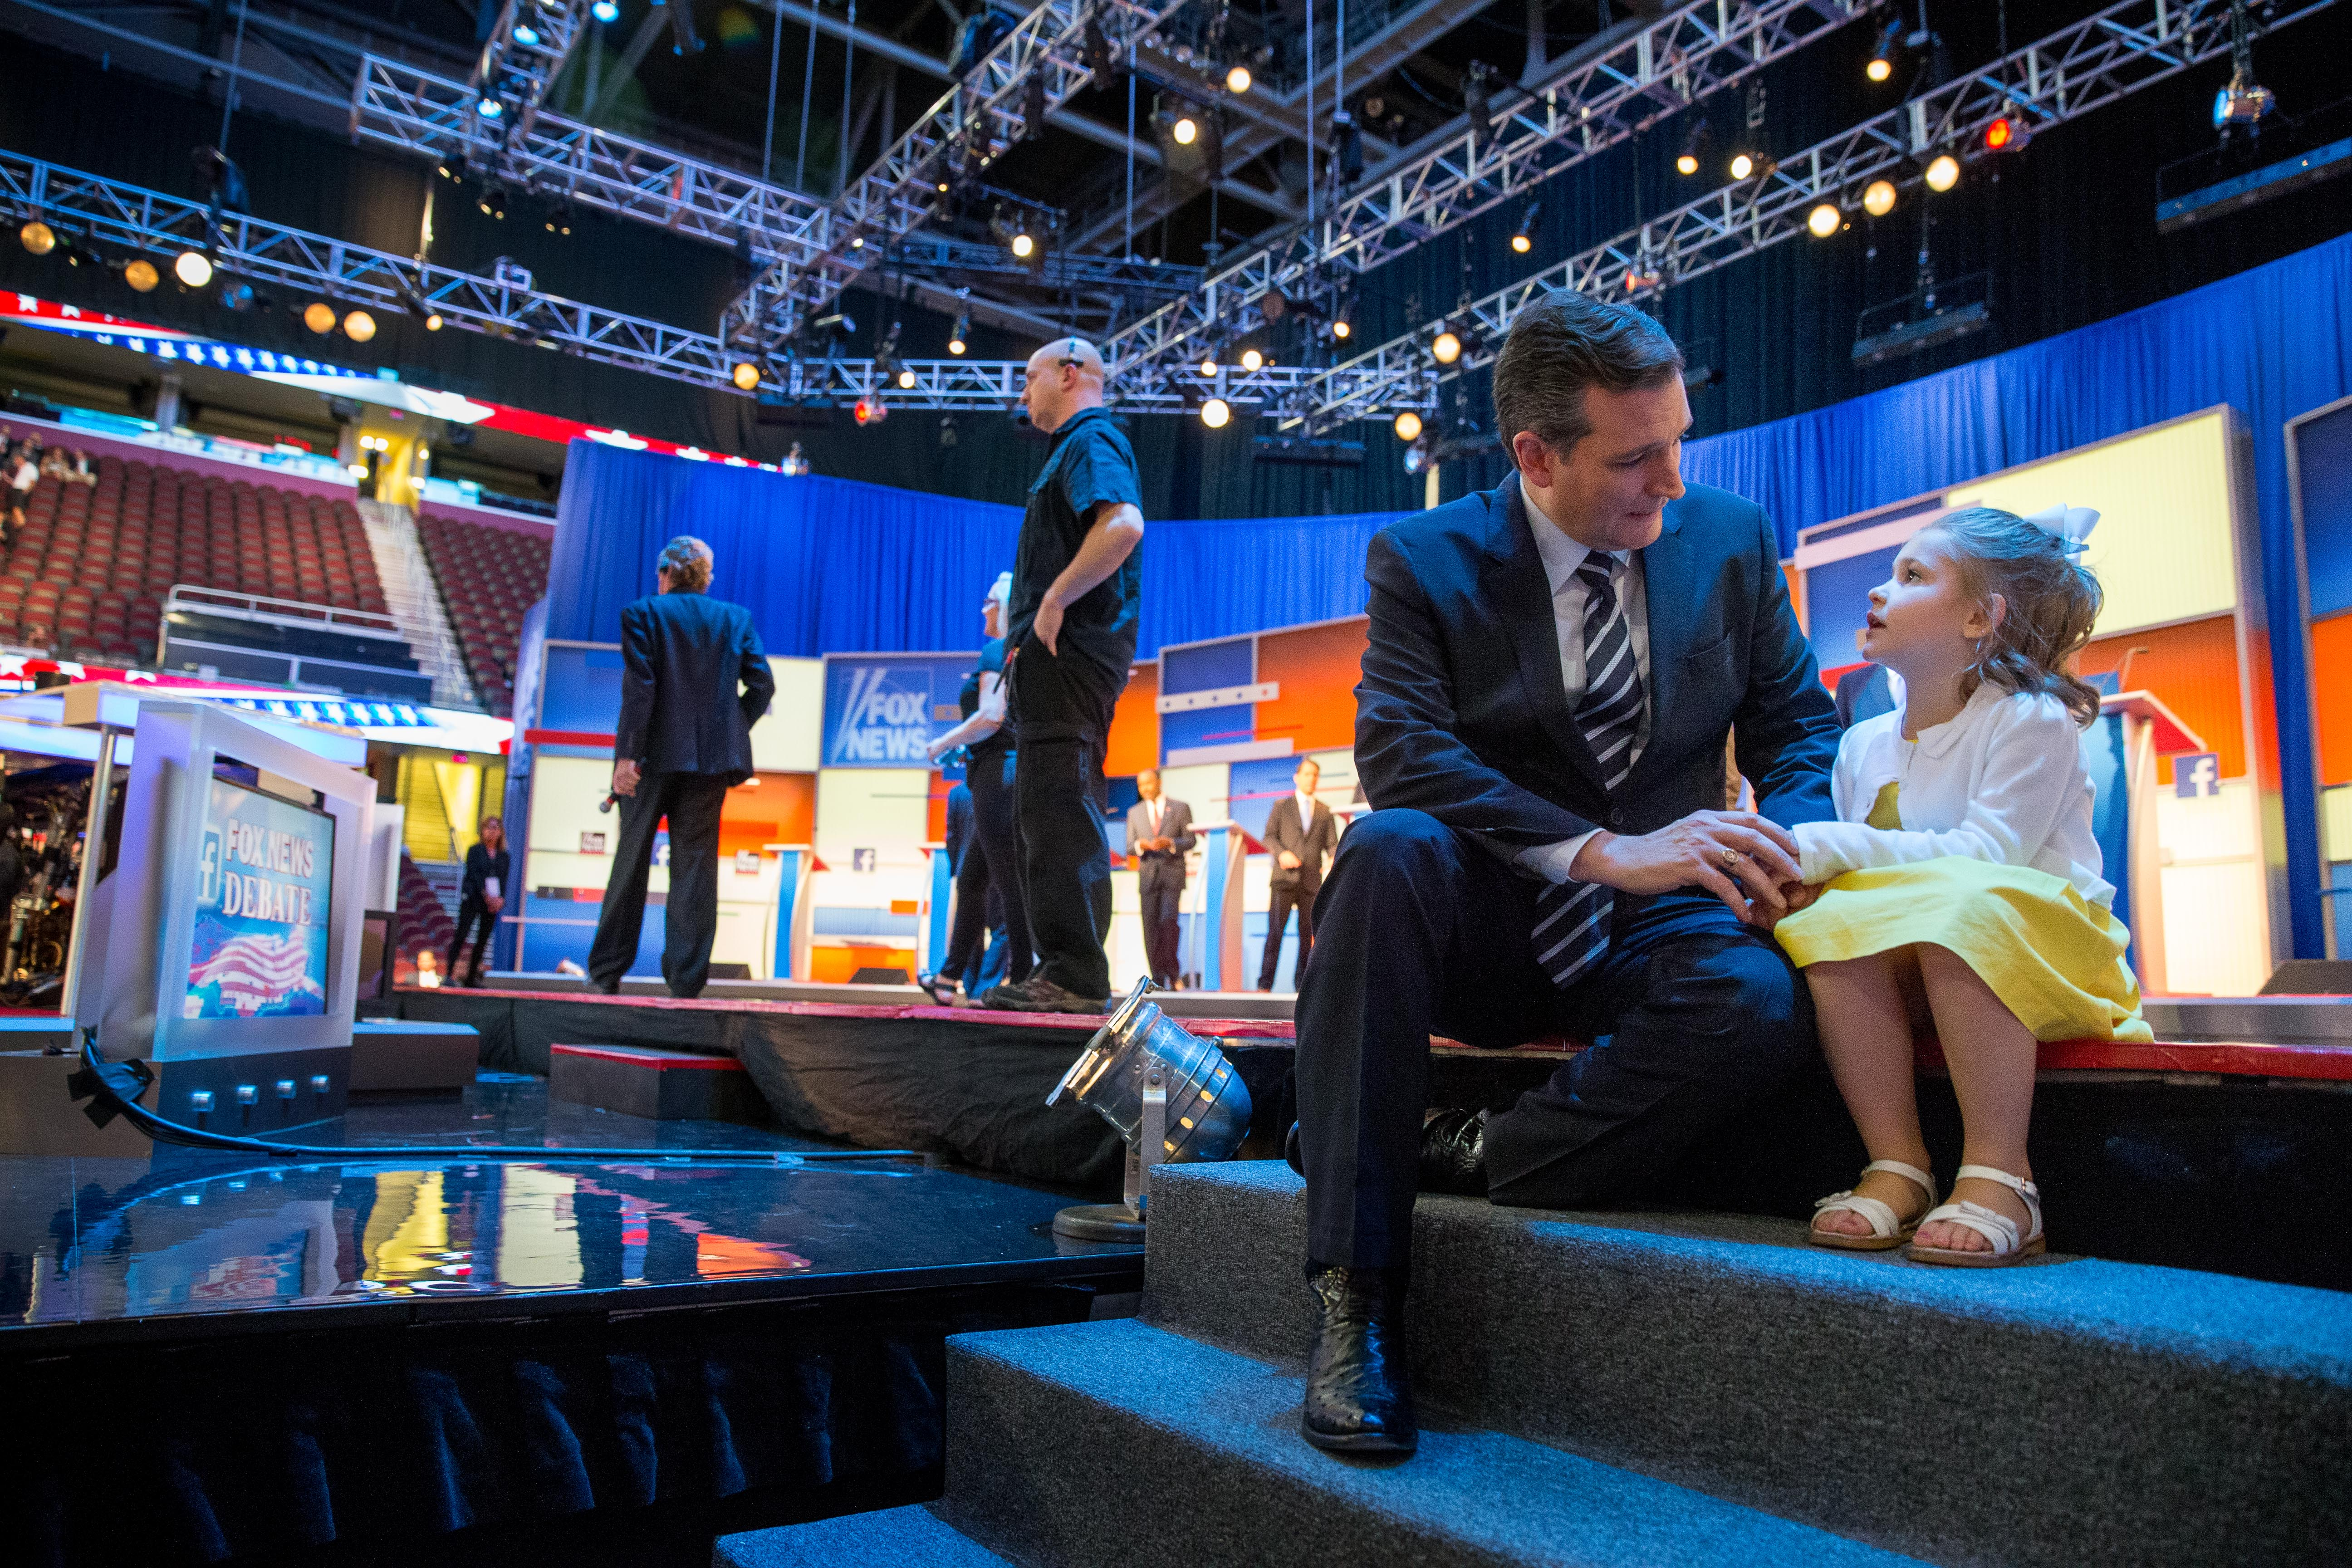 #GOPDebate: Ted Cruz's Precious Daughters Steal The Show